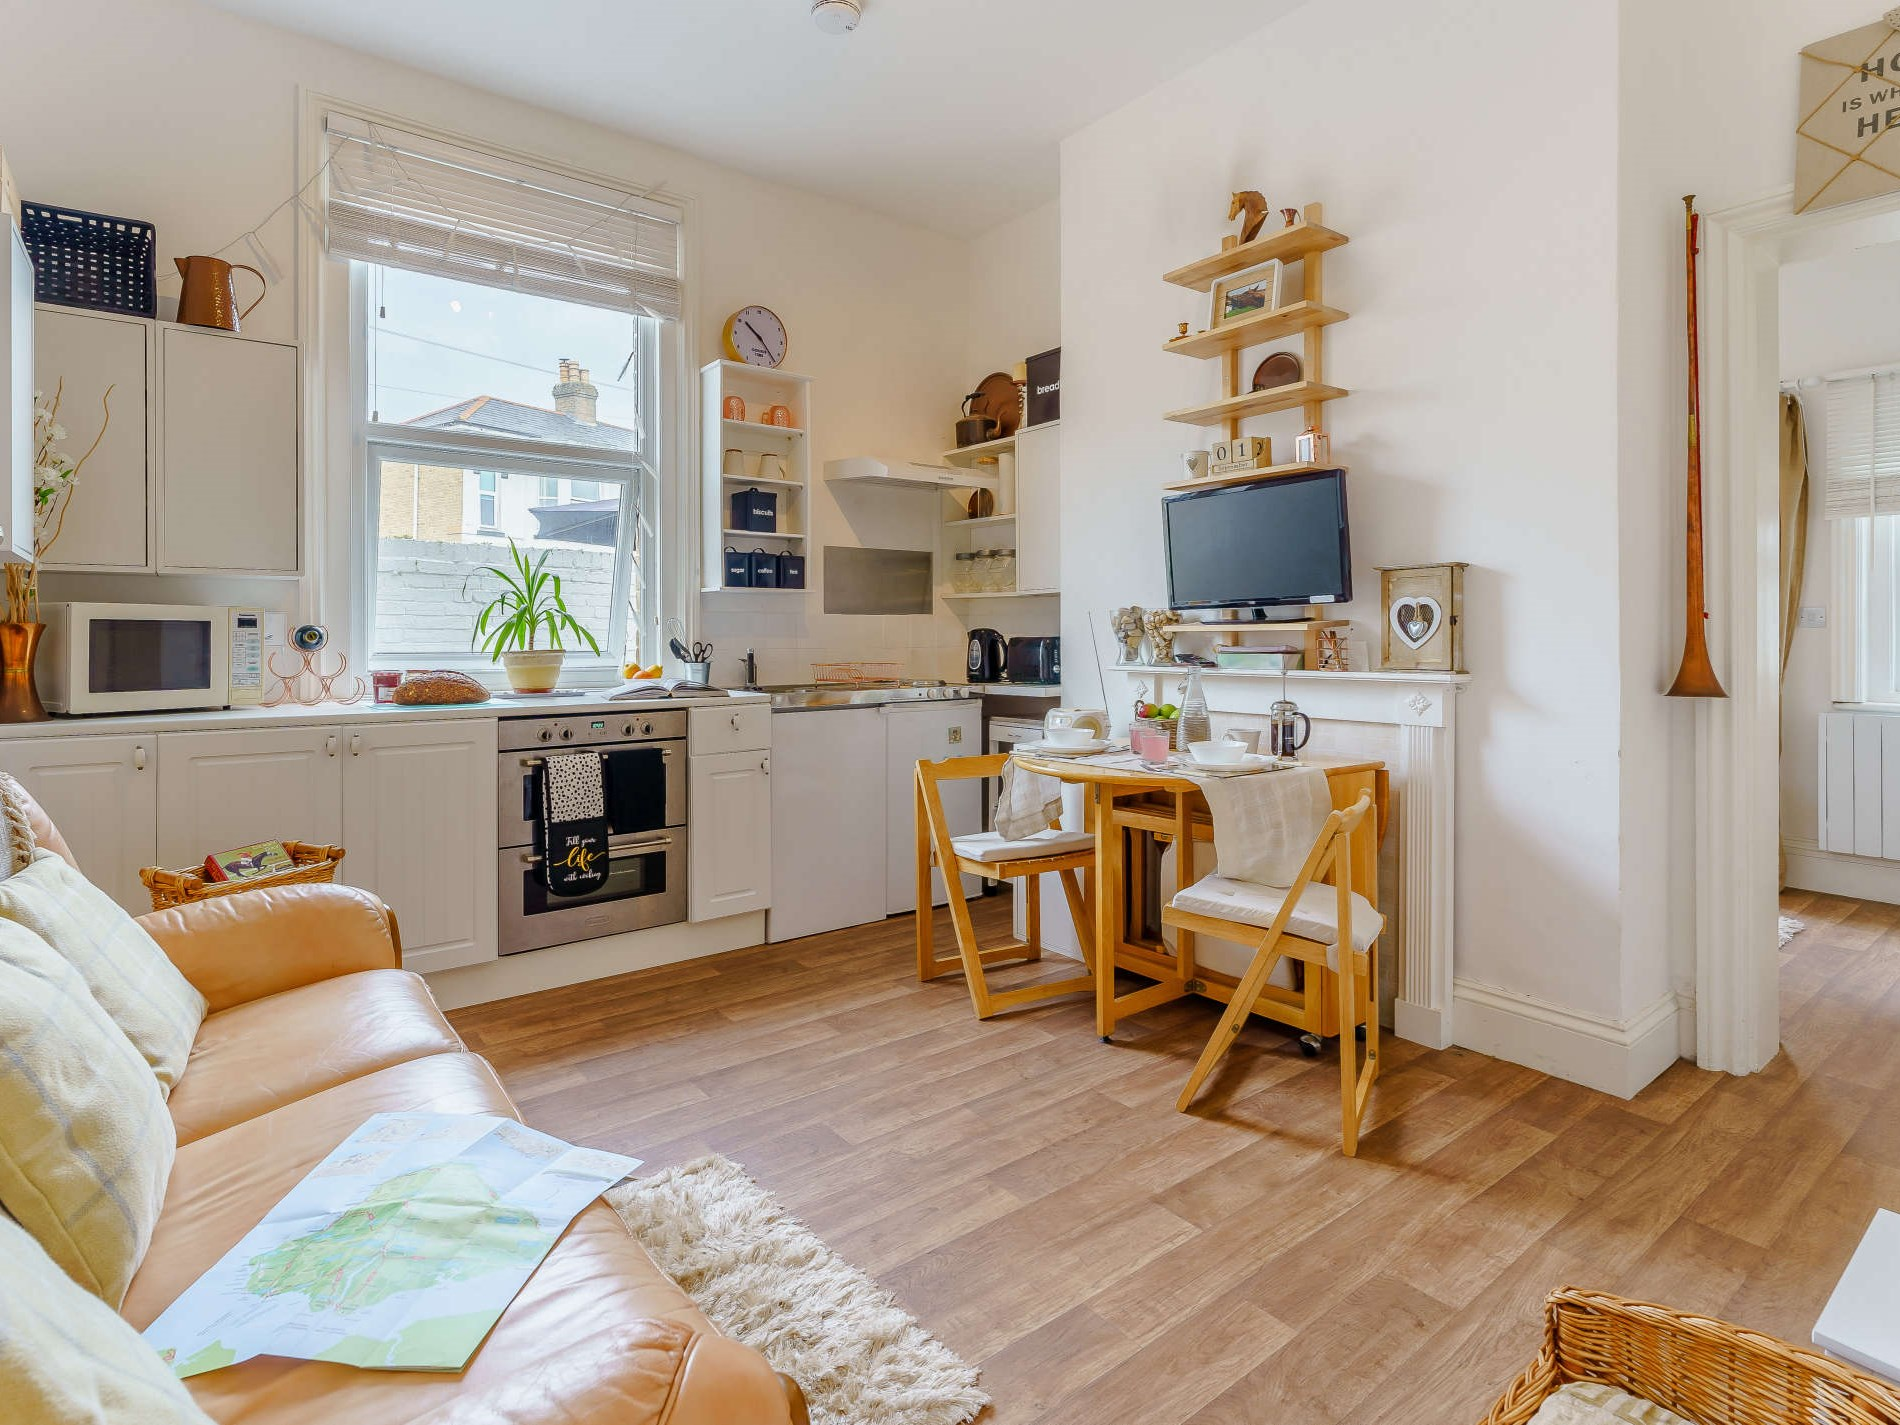 1 Bedroom Apartment in Isle of Wight, Isle Of Wight